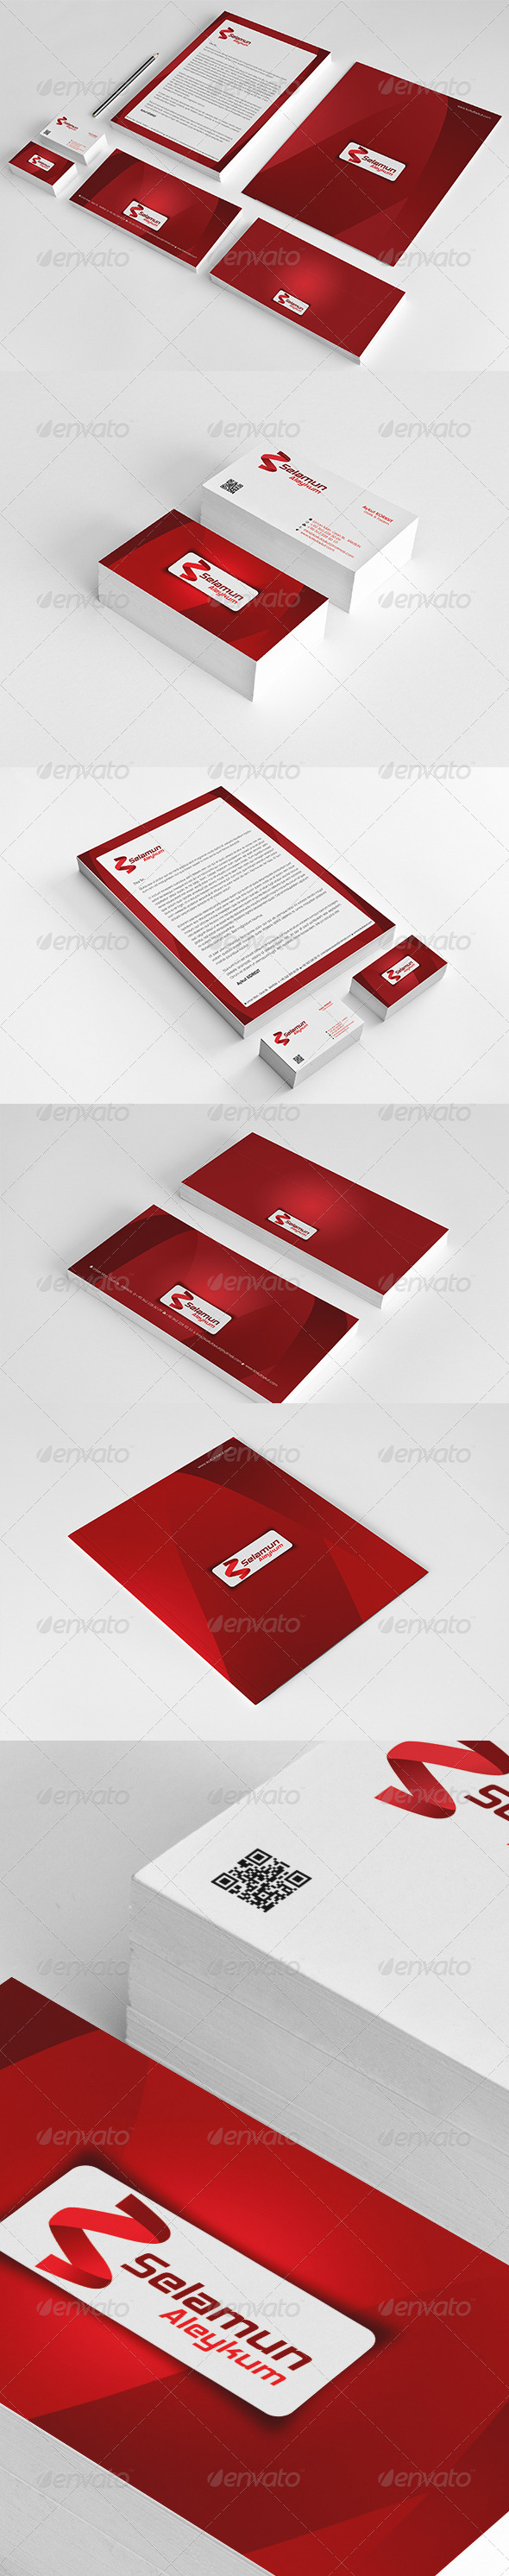 GraphicRiver Selamun Corporate Identity Package 6397921